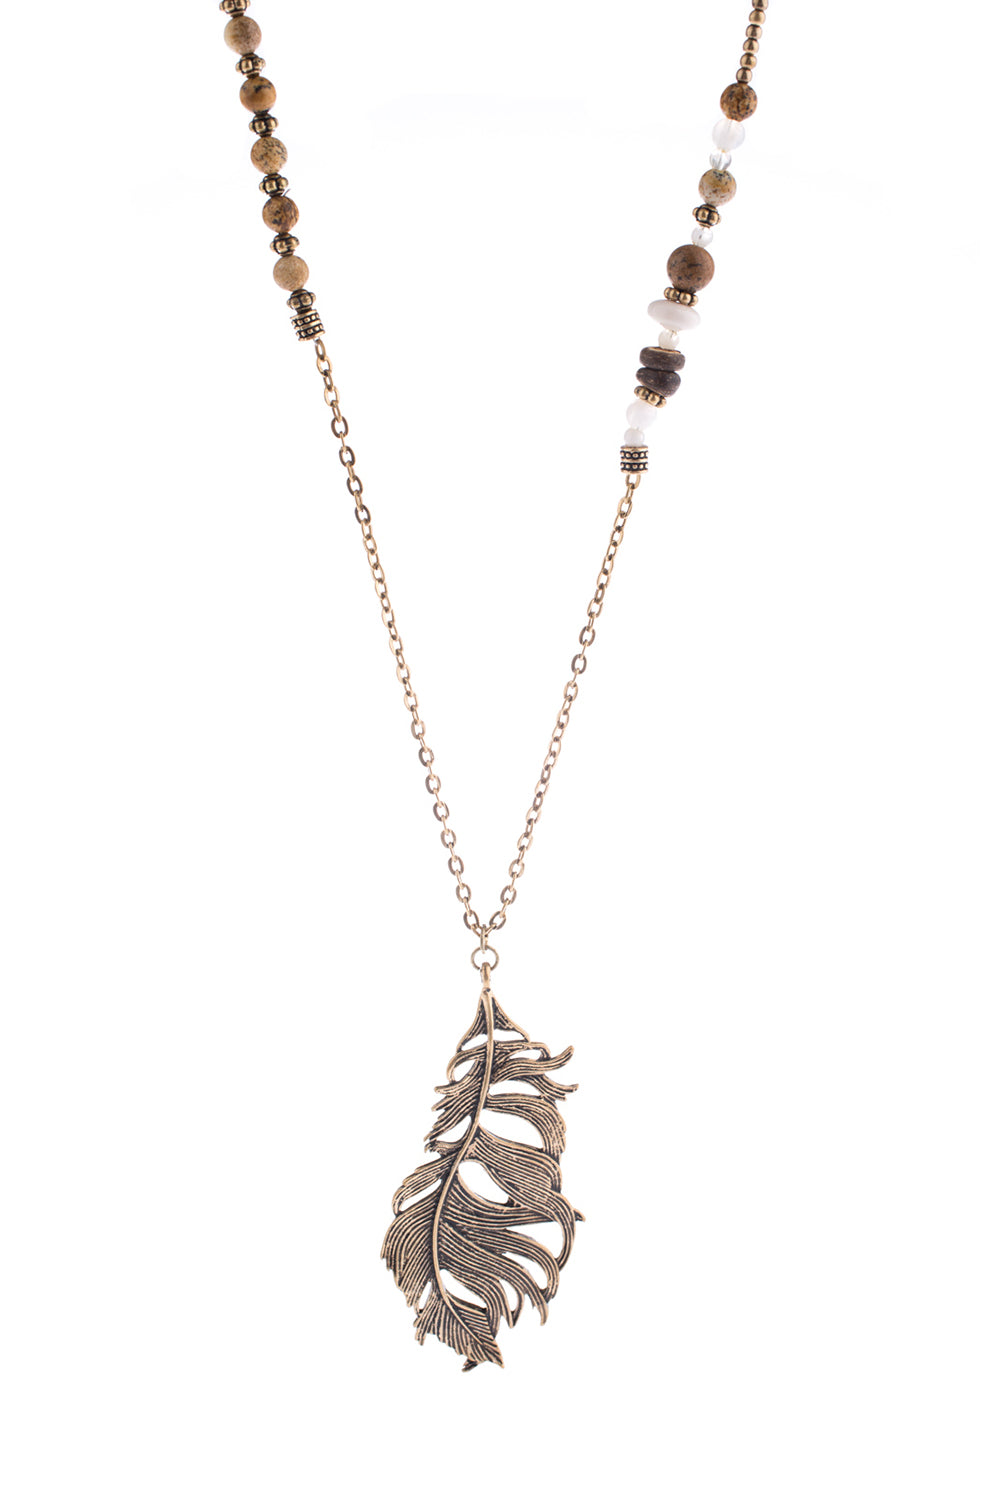 Type 3 Changing Seasons Necklace